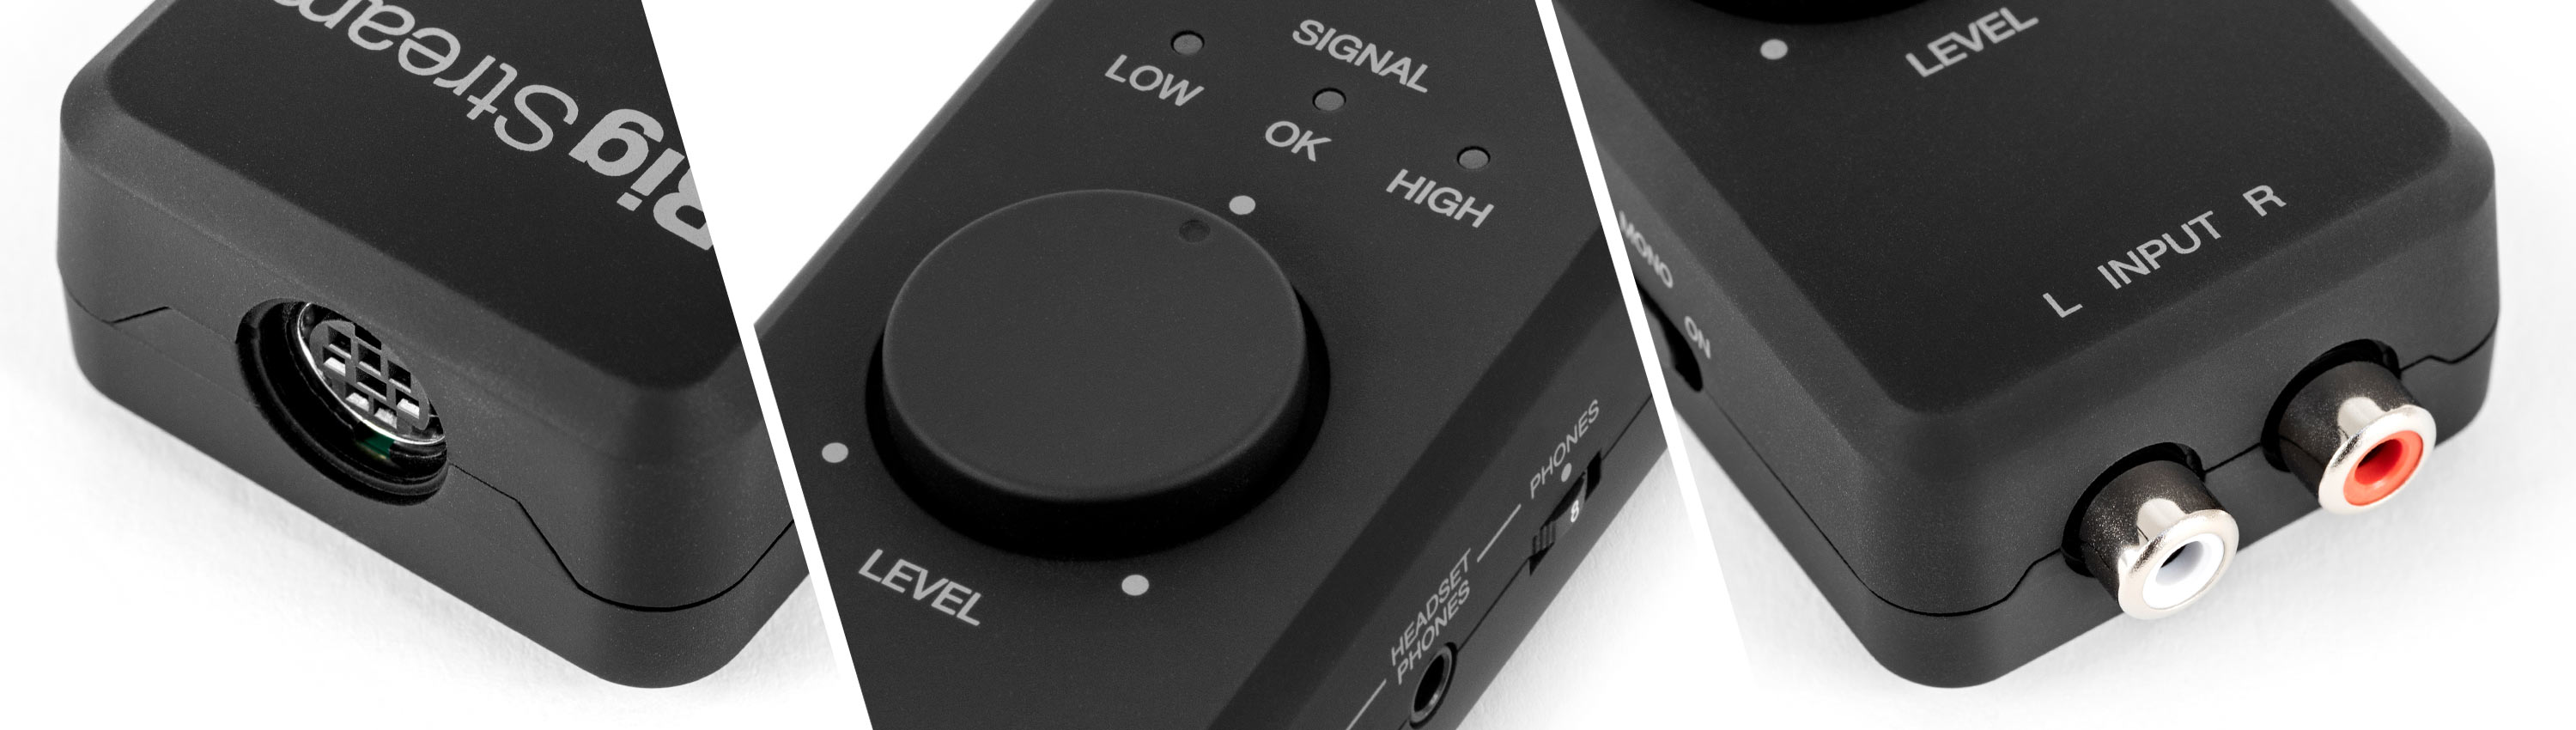 iRig Stream live-streaming audio interface